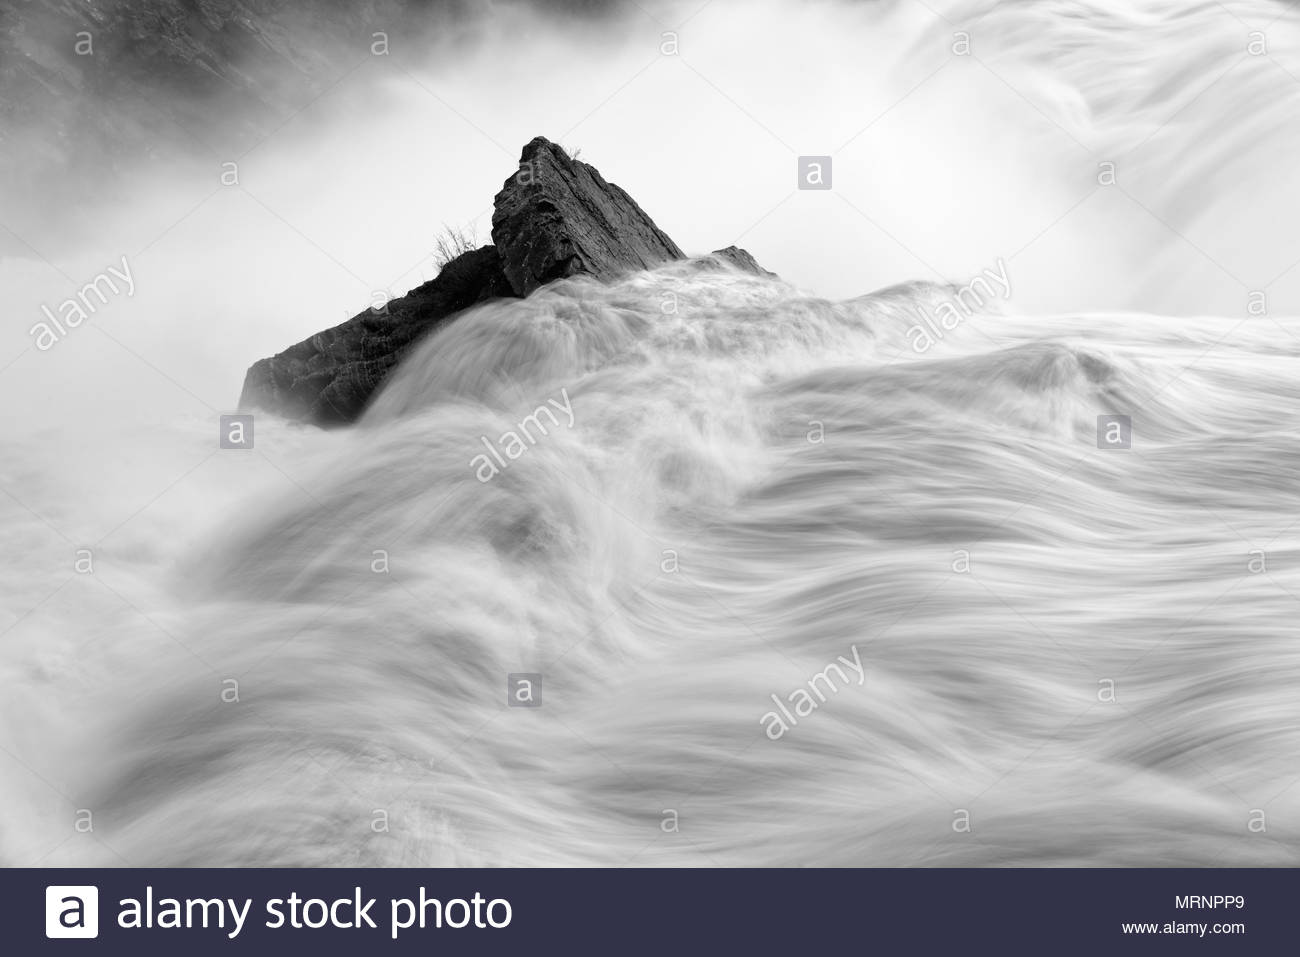 powerful-spring-meltwater-flow-in-the-chutes-de-la-chaudiere-at-charny-near-quebec-city-MRNPP9.jpg